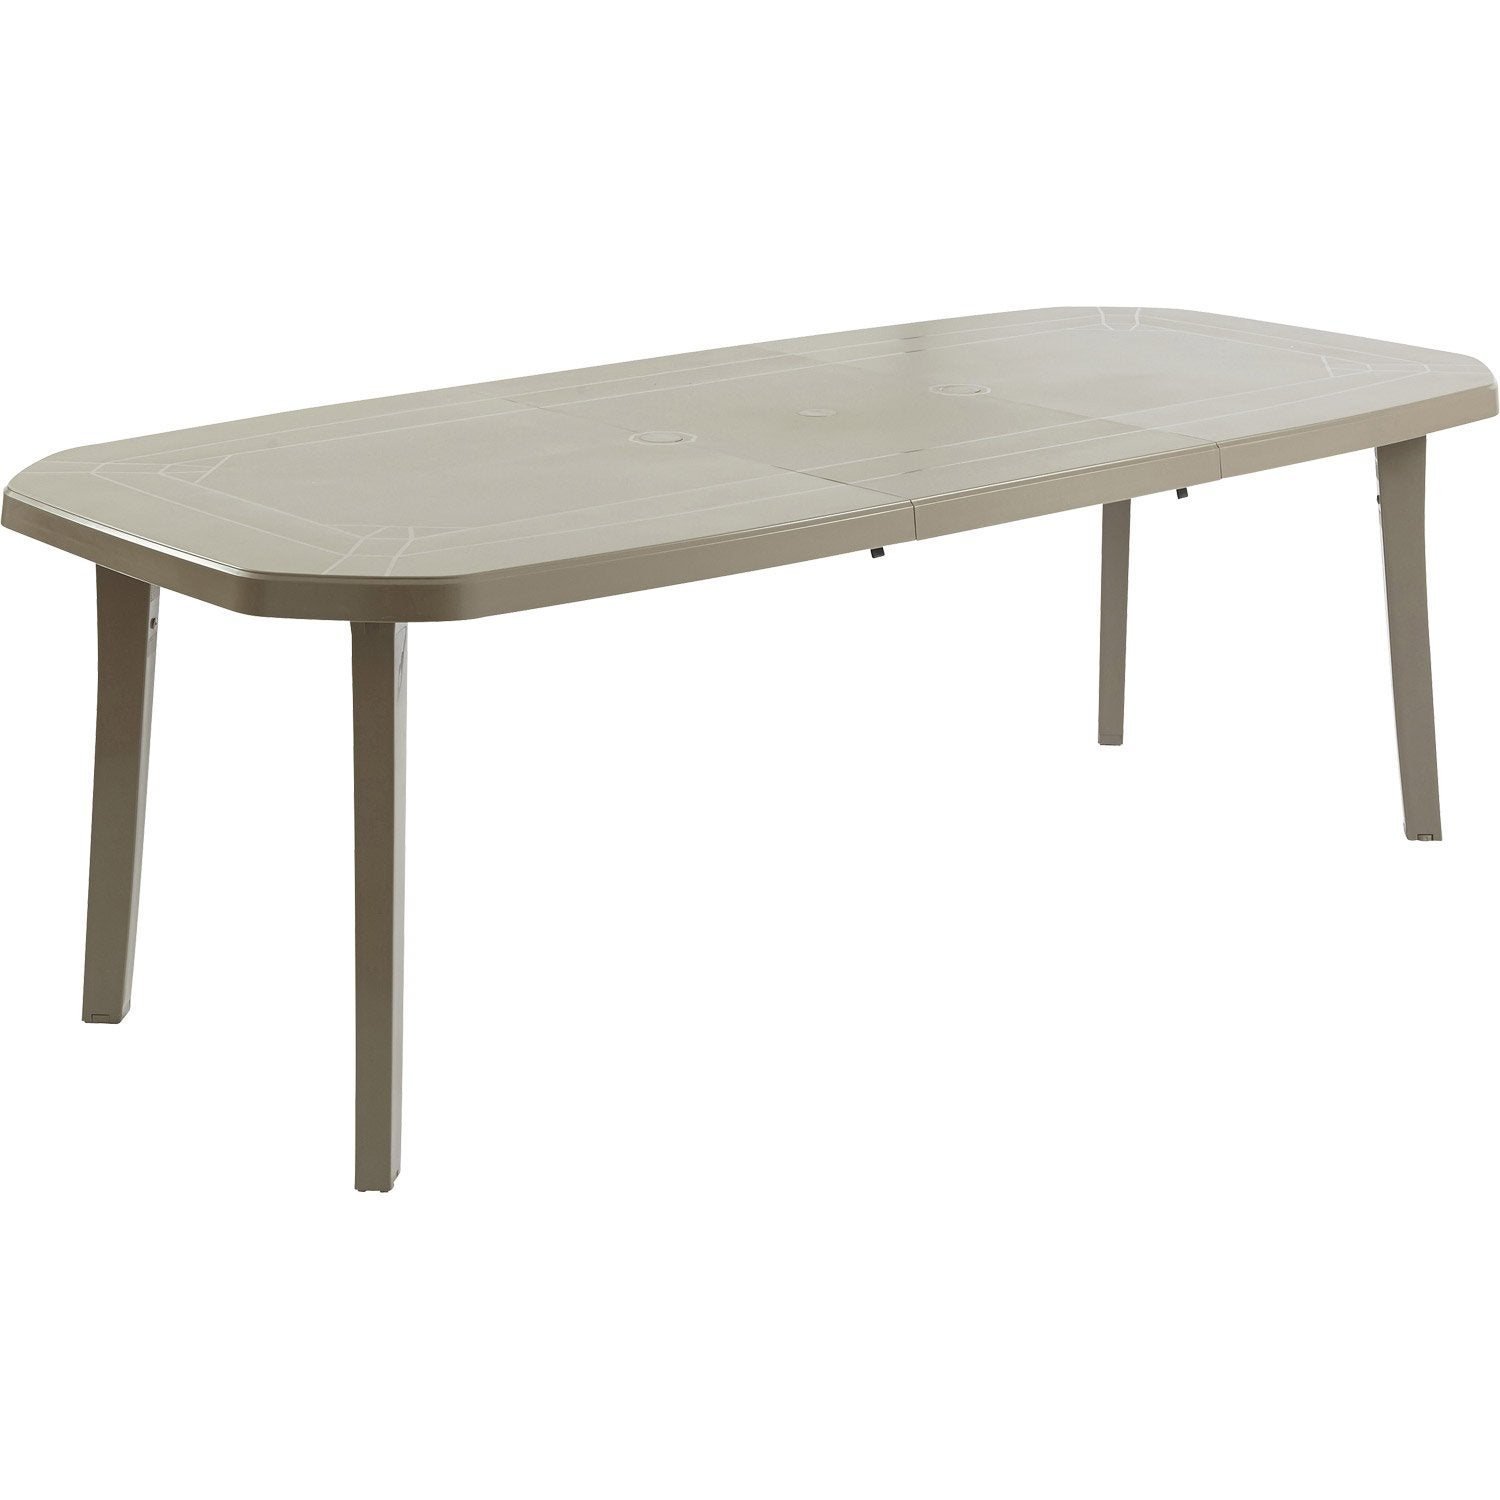 Table de jardin rectangulaire miami grosfillex leroy merlin - Table de jardin avec chaise ...